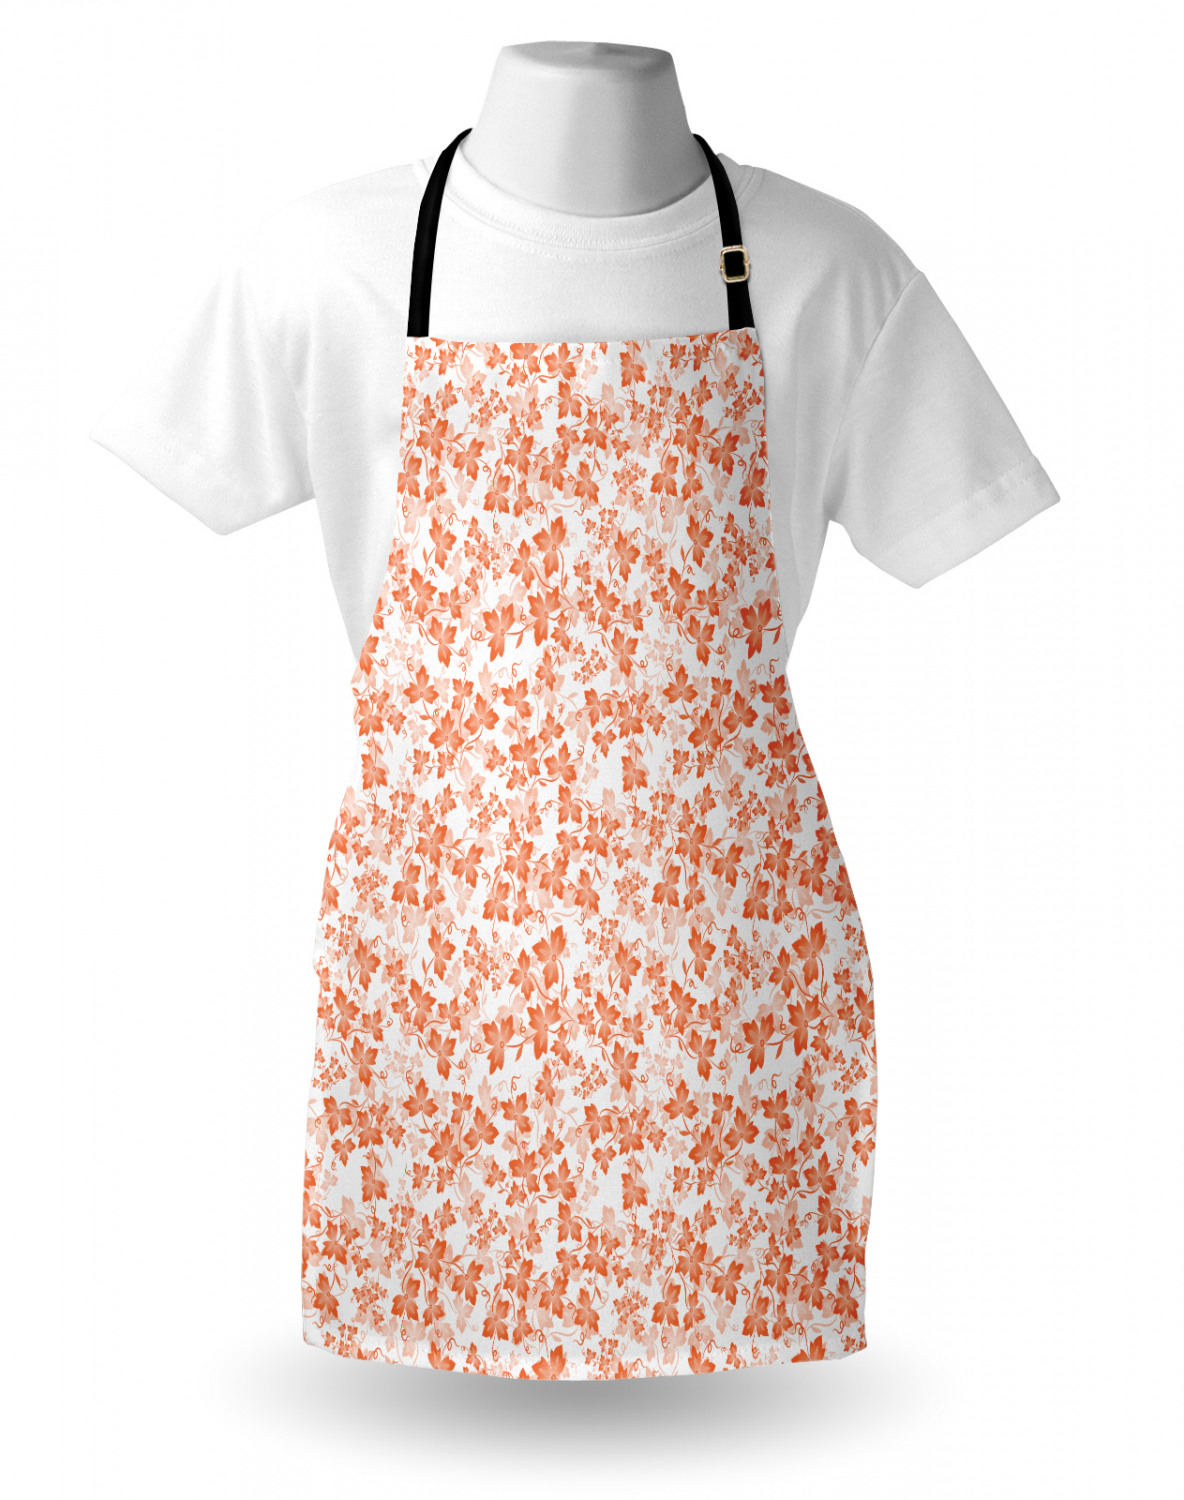 Ambesonne-Outdoor-Use-Apron-with-Adjustable-Neck-Strap-for-Gardening-and-Cooking miniatura 57